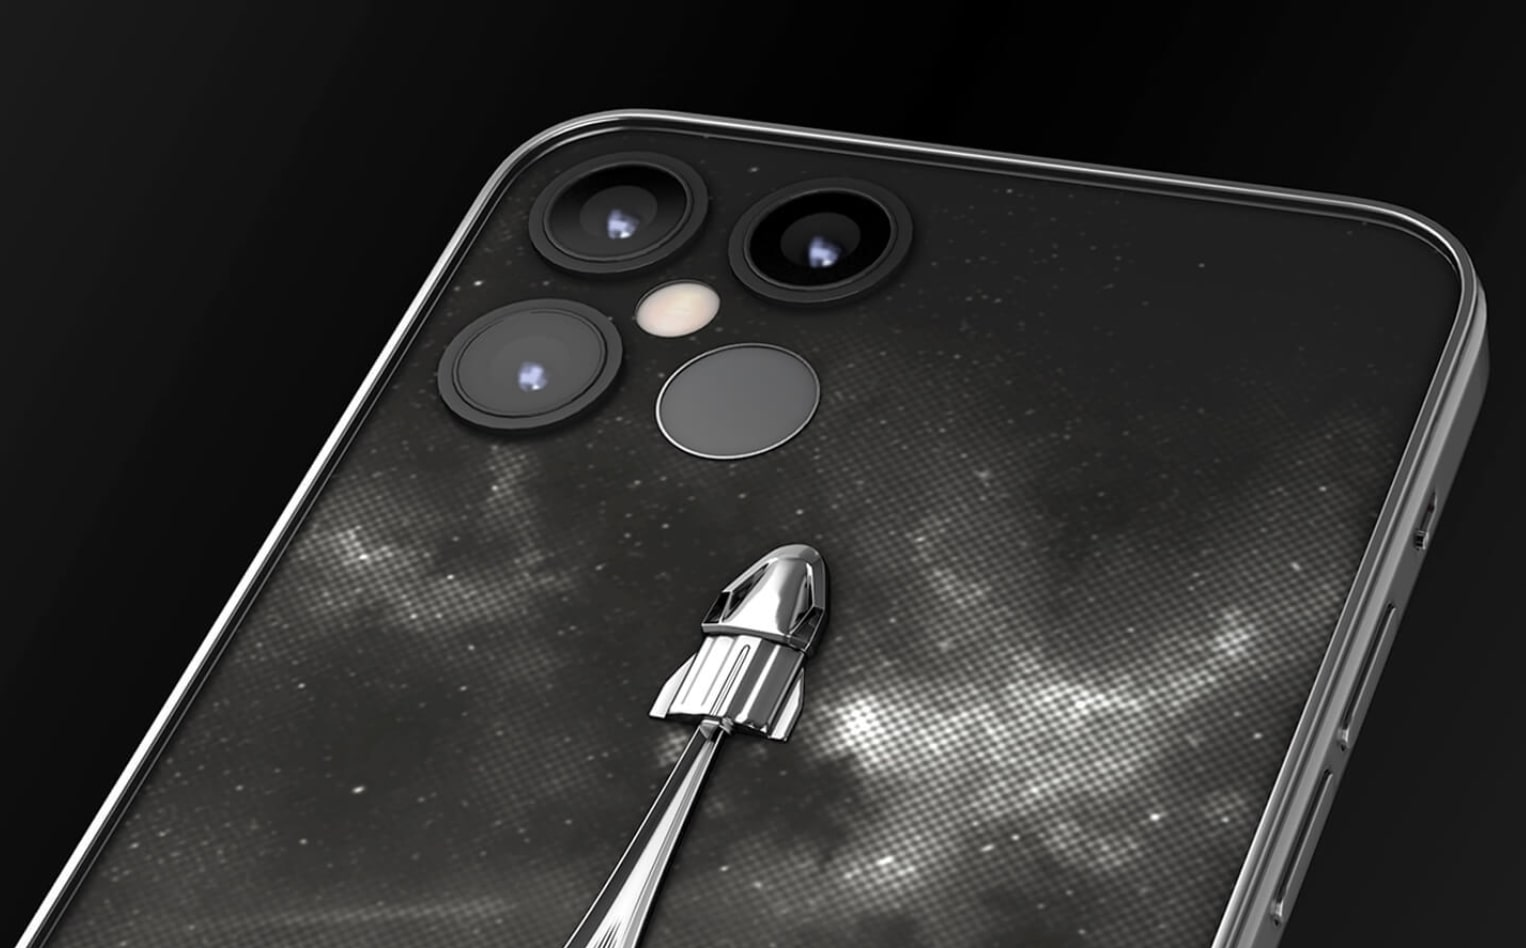 Would you buy this SpaceX-themed iPhone 12 Pro?